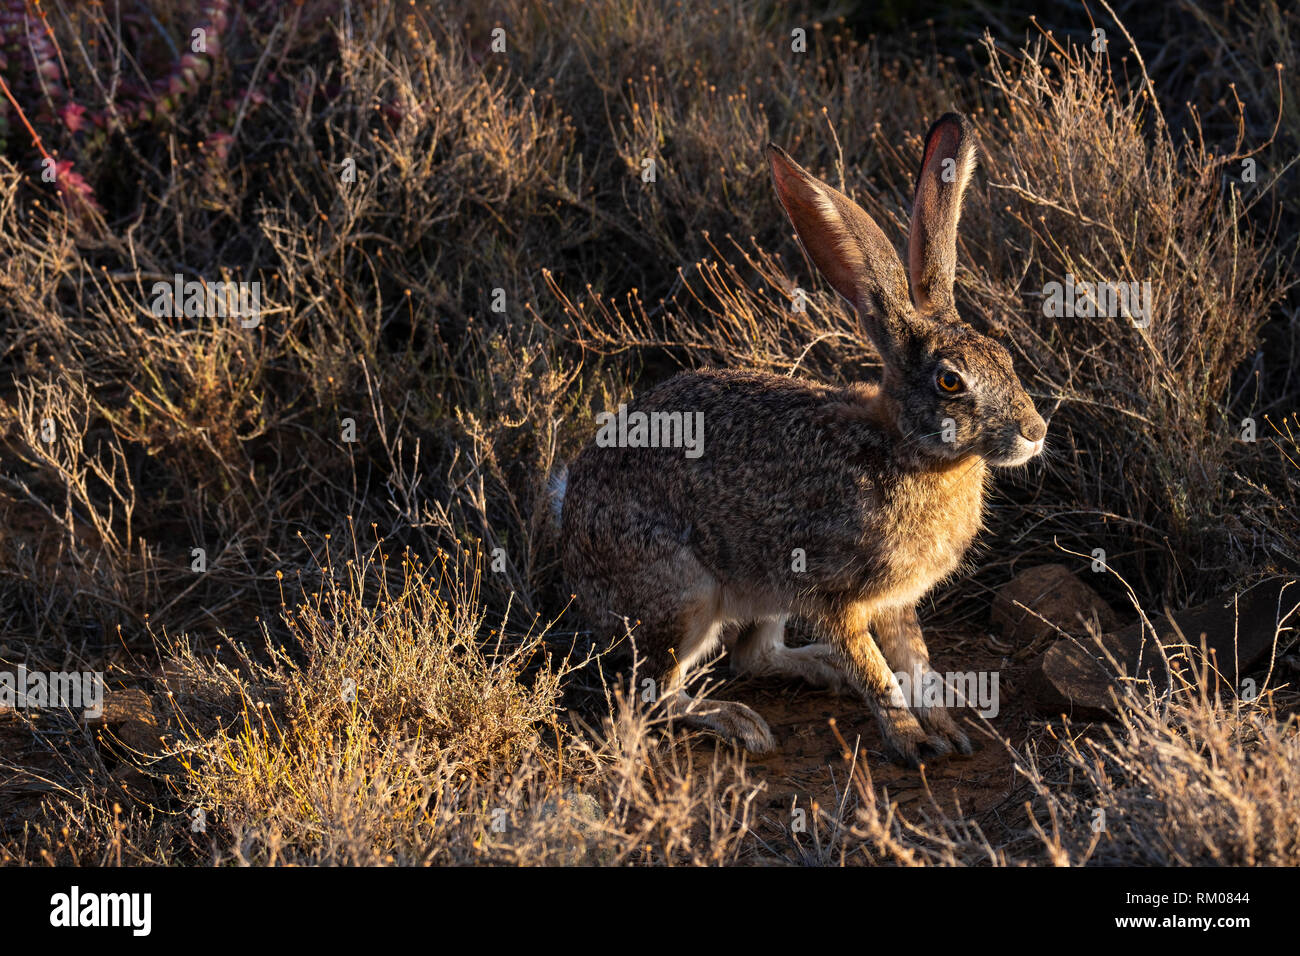 Scrub Hare in the early morning light - Stock Image